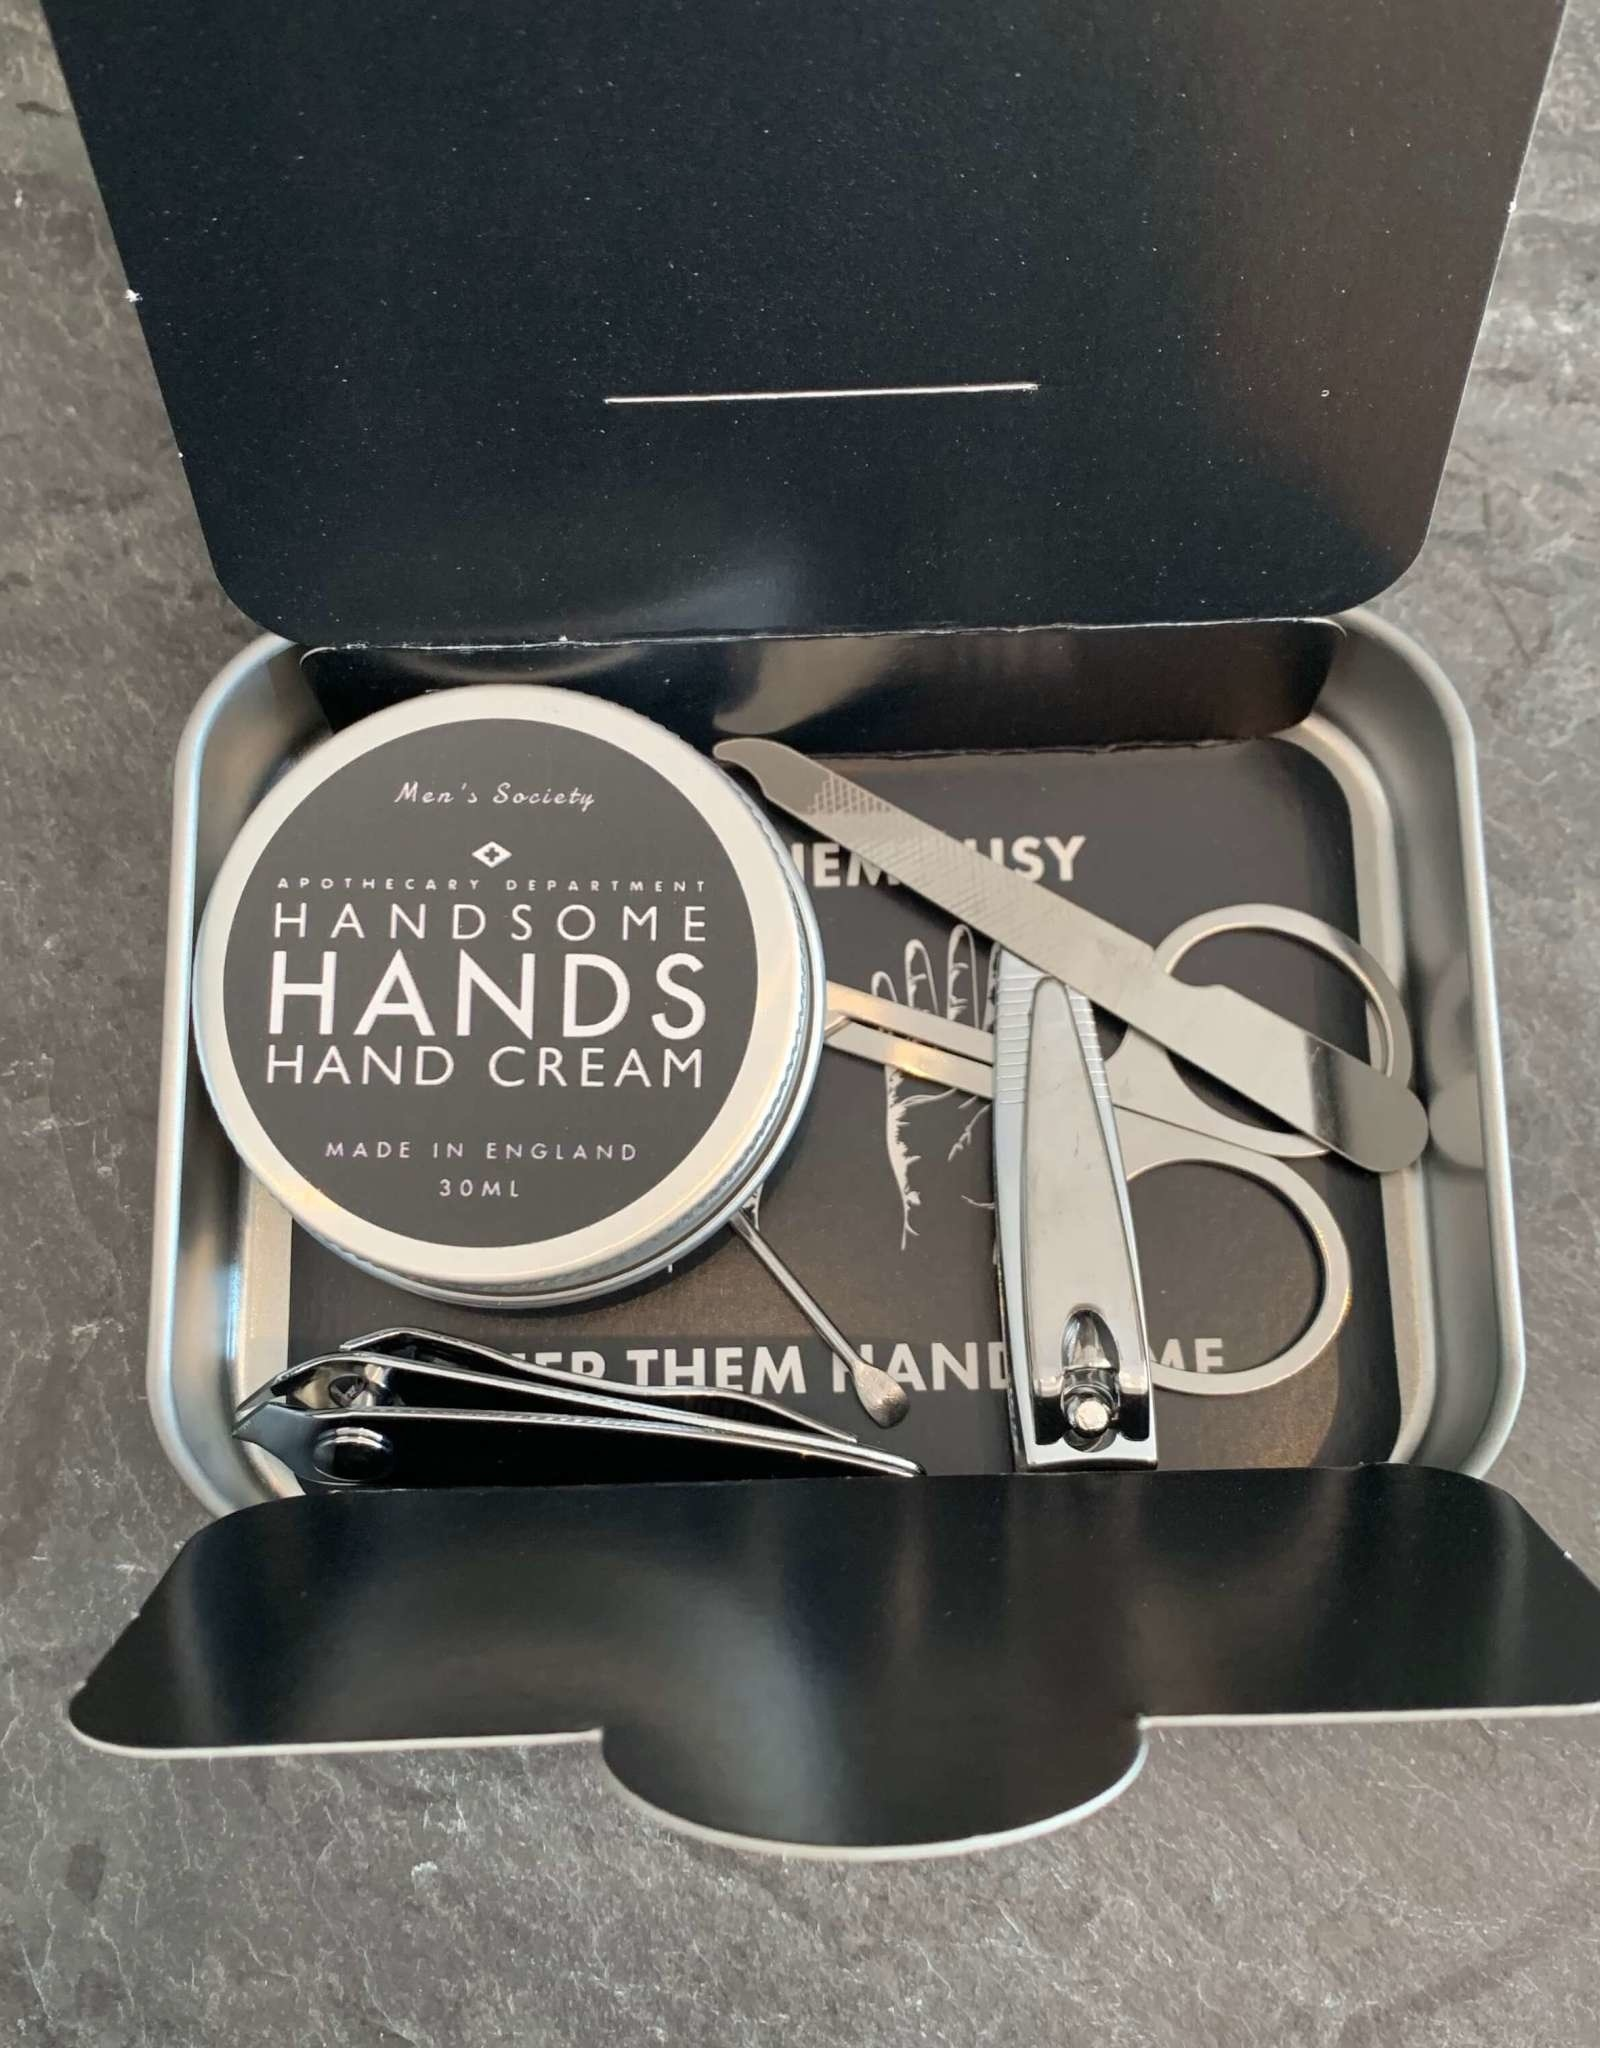 The Men's Society Men's Society Handsome Hands Manicure Kit